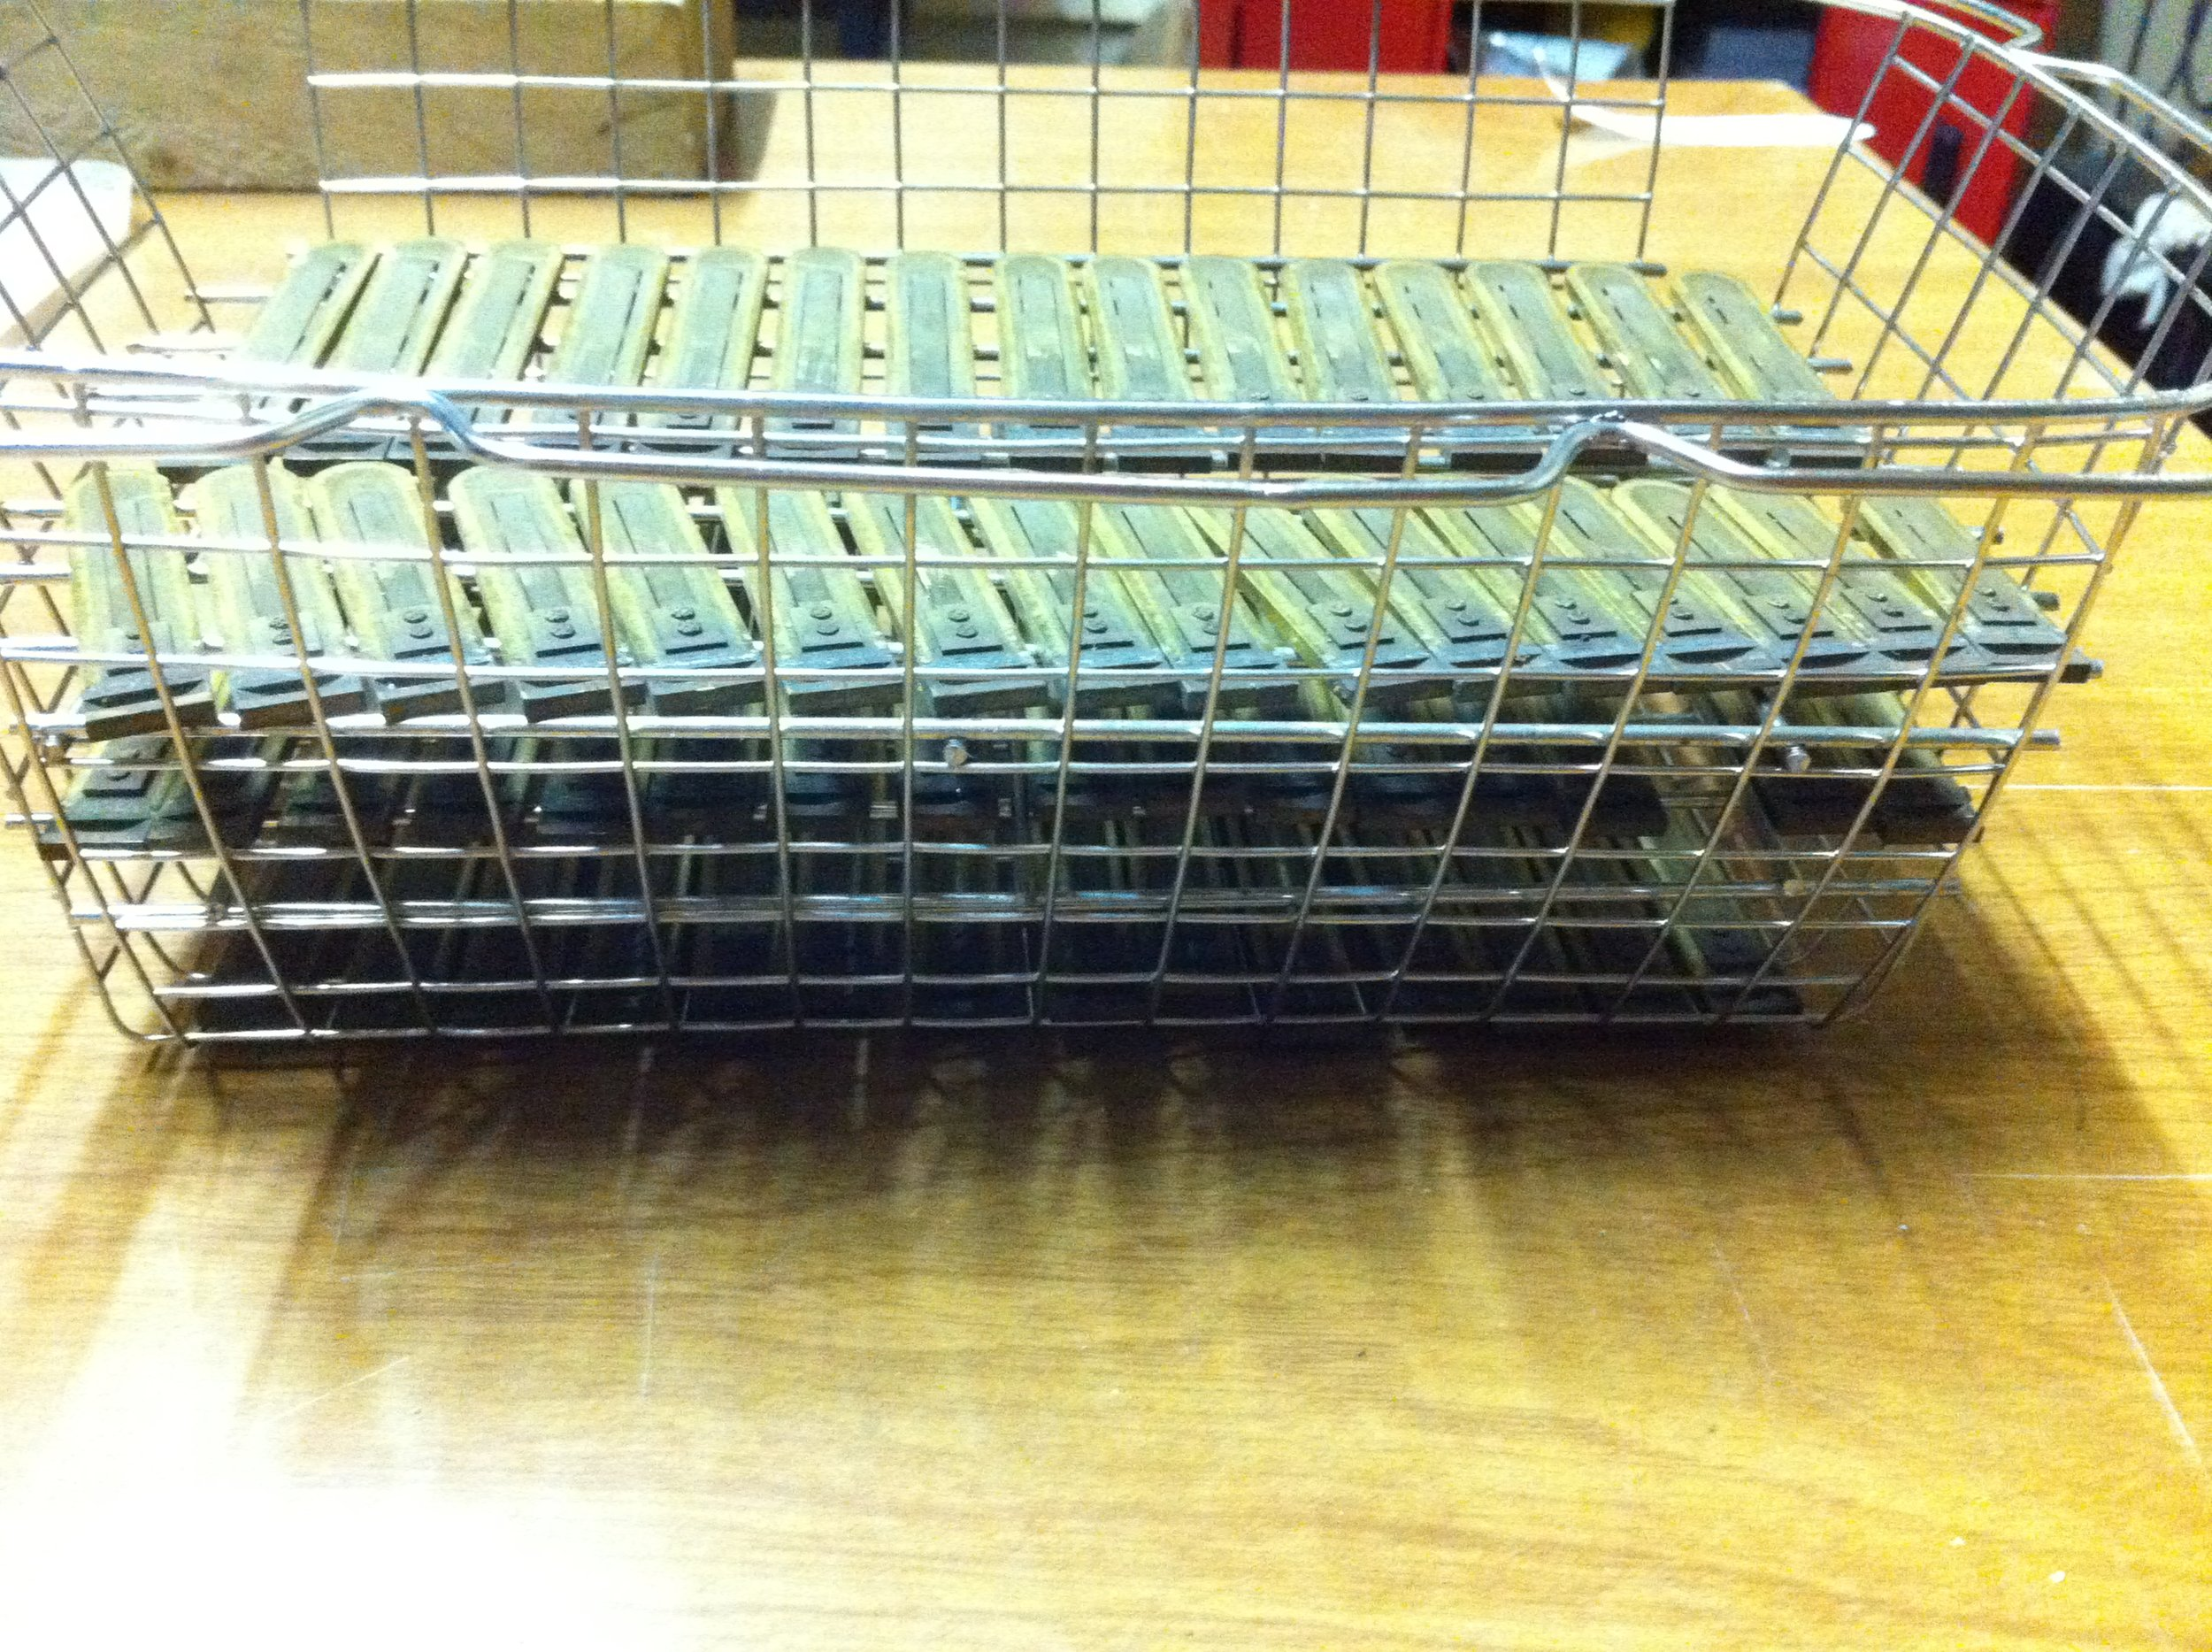 A rank of reeds in the basket ready for the ultra sonic cleaner